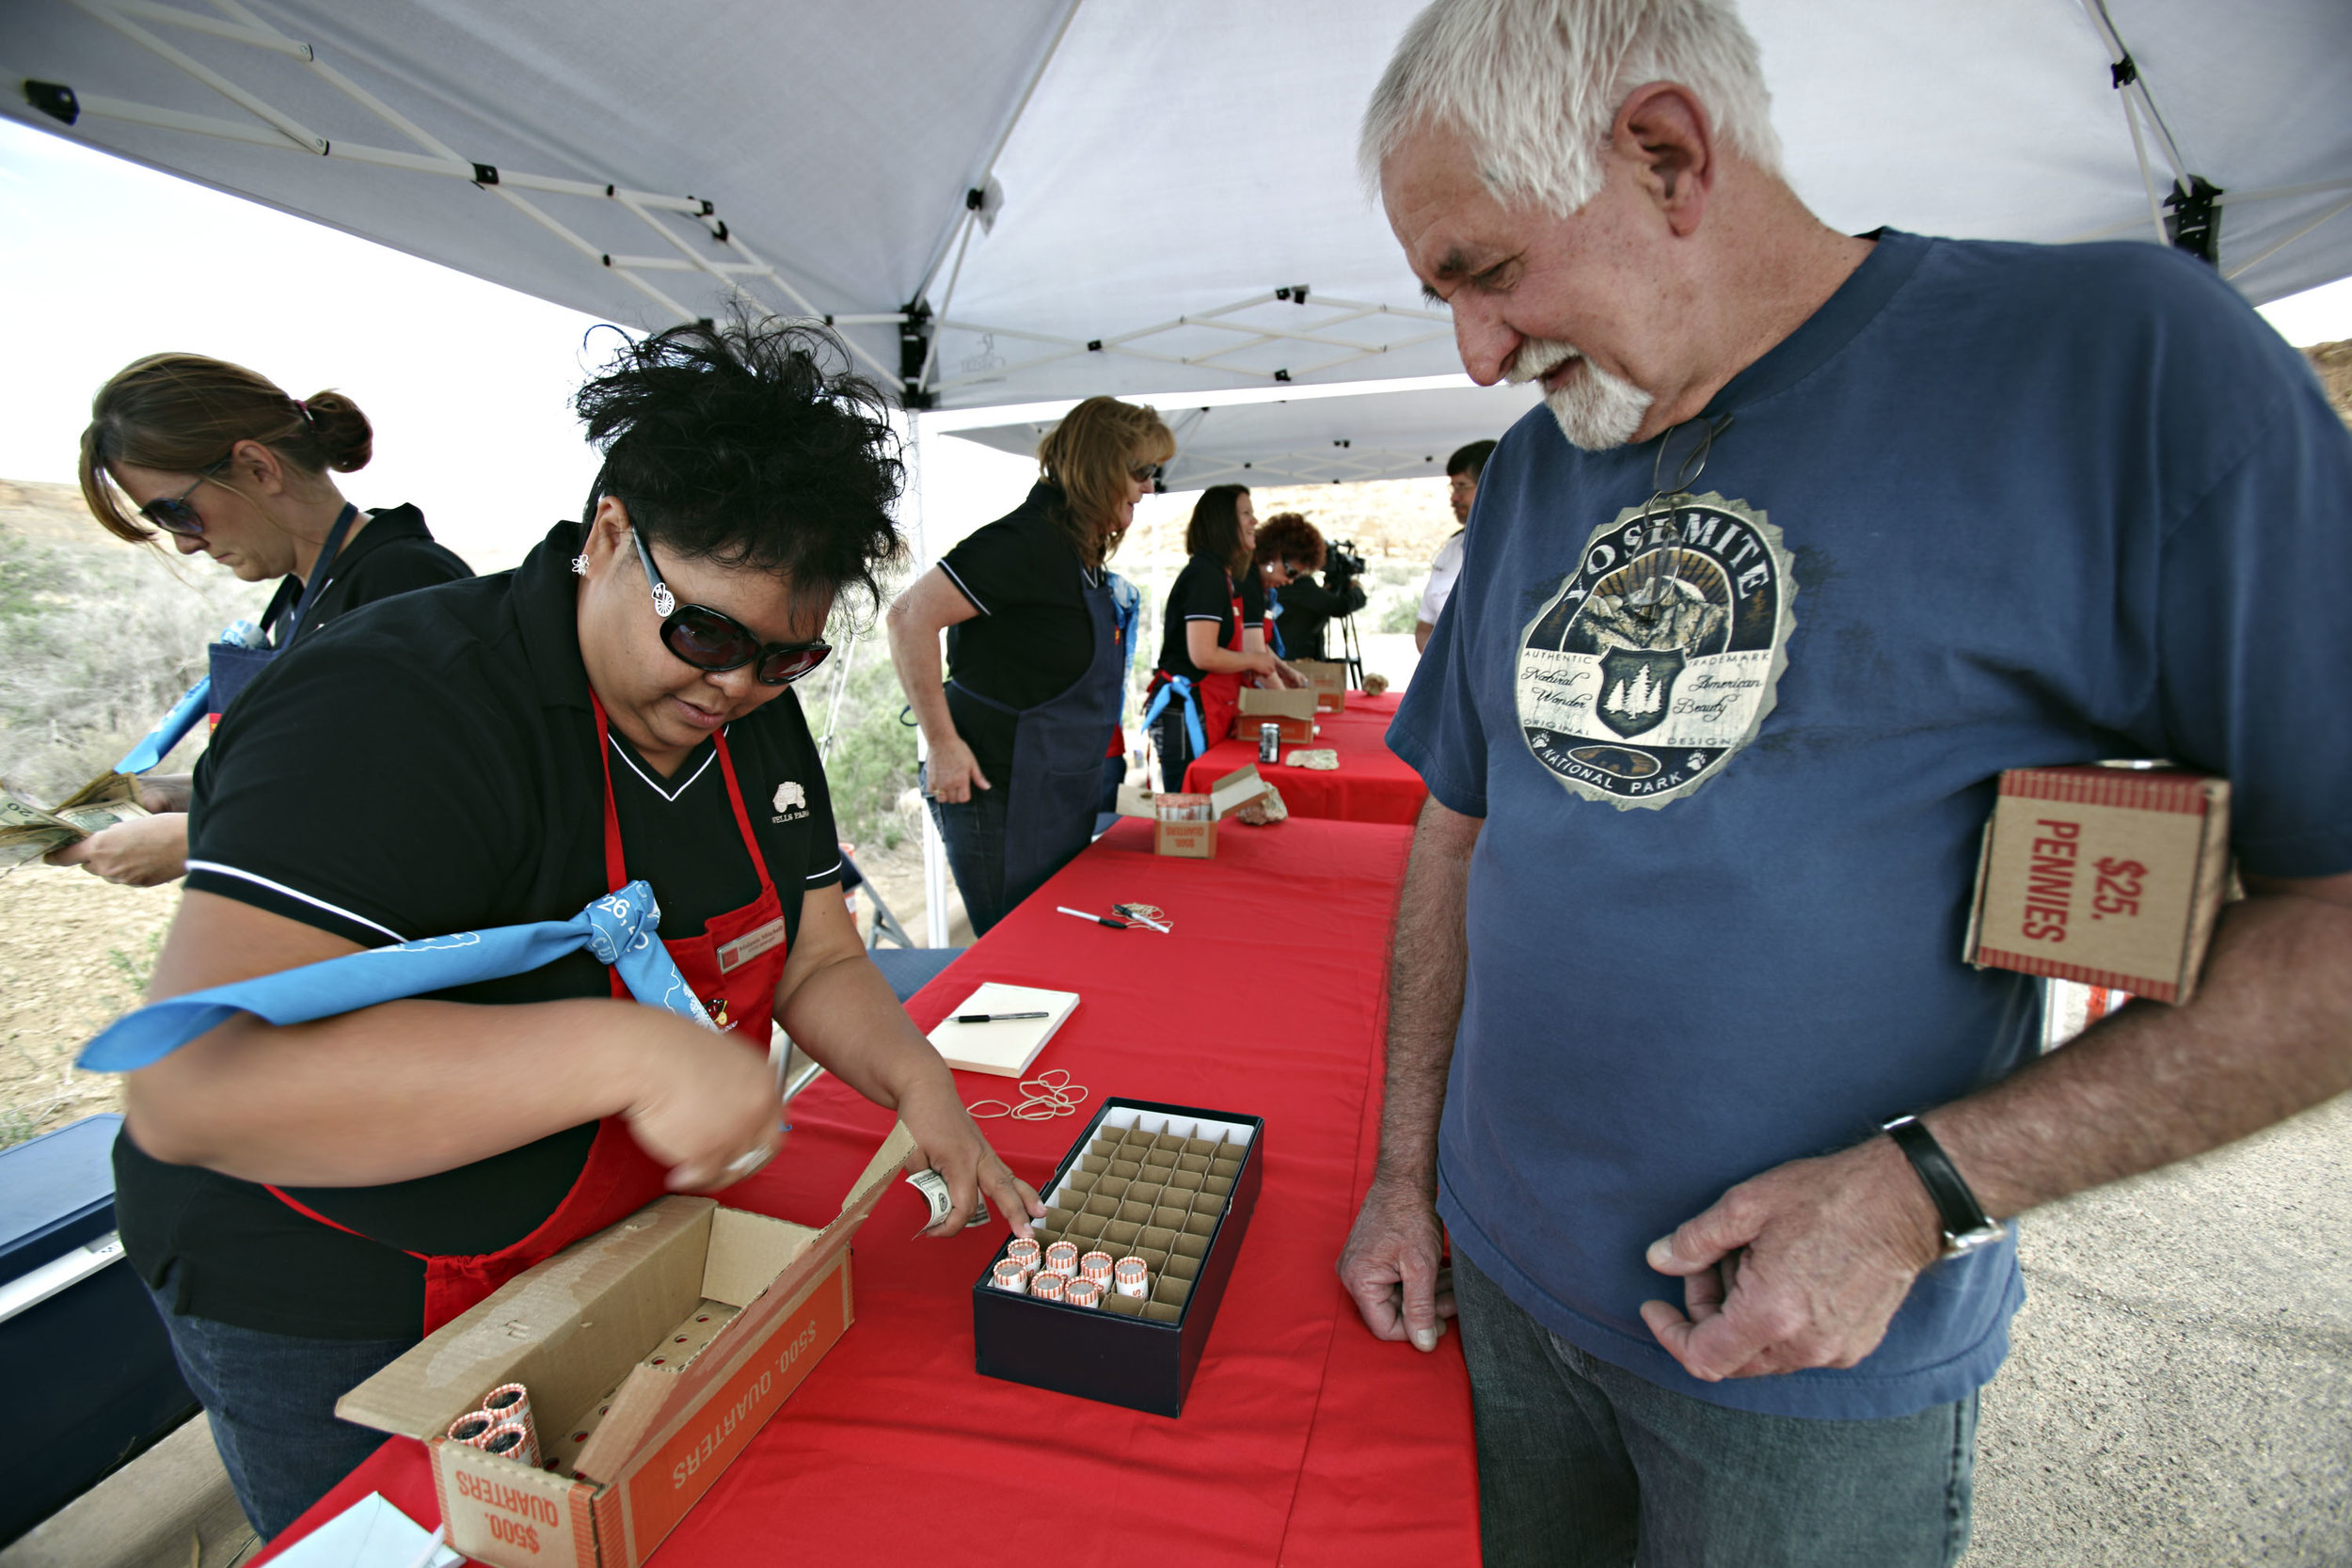 Gallup Wells Fargo store manager Melanie Mitchell exchanges 10 rolls of $10 quarters for coin collector Jon Brackin, from Las Vegas, Nevada, during the quarter launch at Chaco Canyon, Thursday, April 26, 2012. Brackin said he has been to 6 of the 8 America the Beautiful quarter launches so far. Wells Fargo brought an armored car out with the new quarters. (Morgan Petroski/Albuquerque Journal)